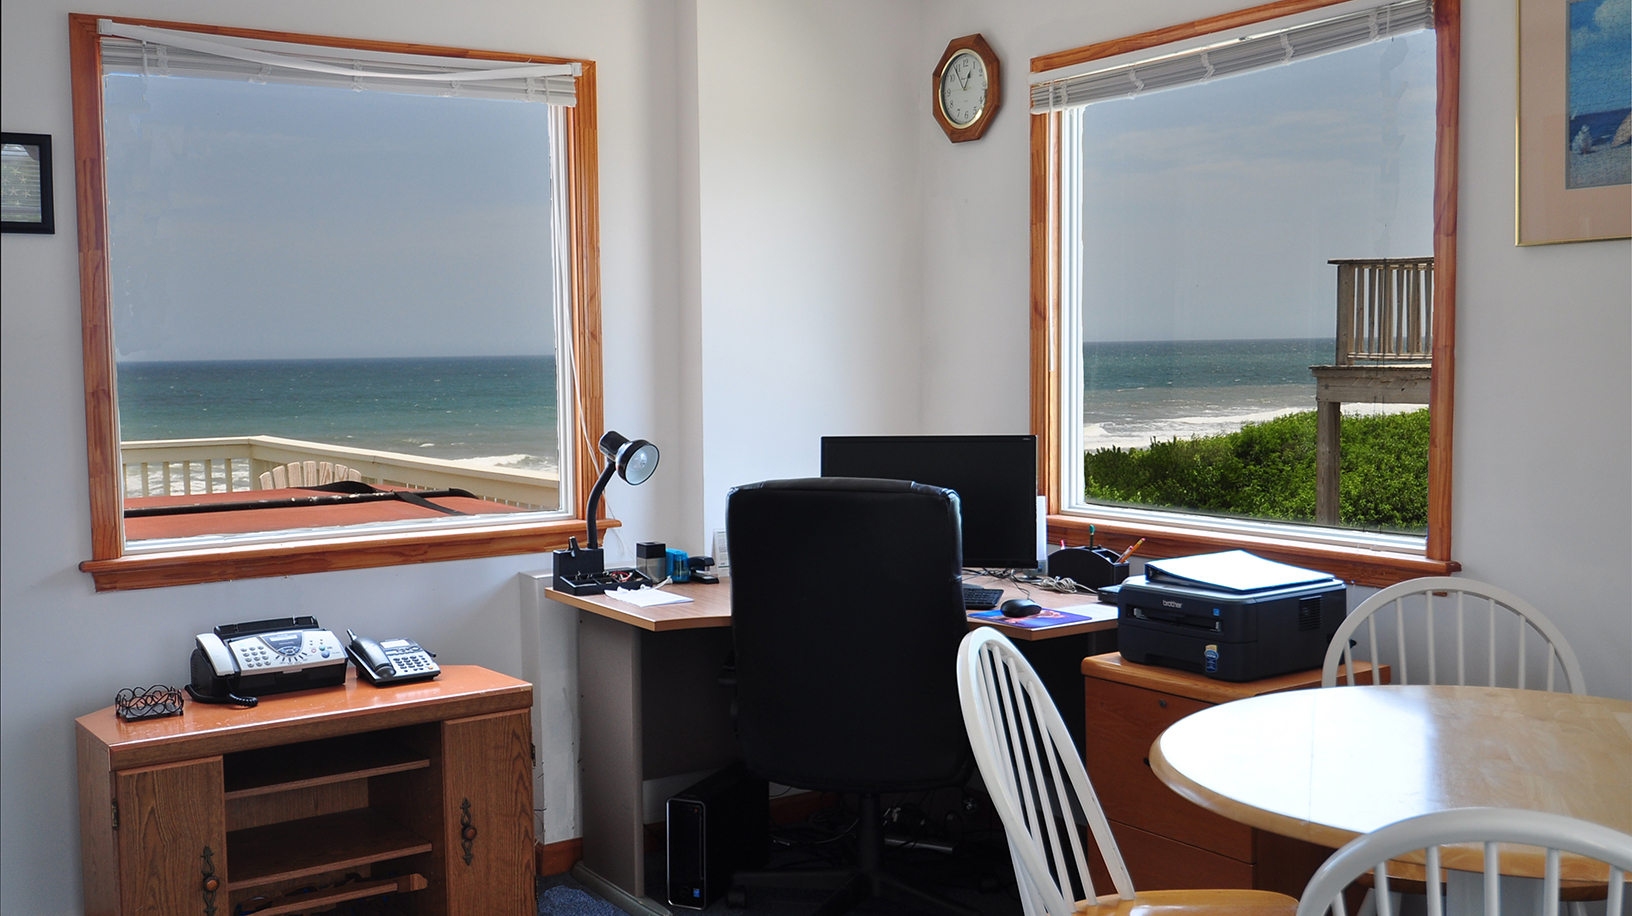 6 Reasons to Work Remotely… From the Beach!